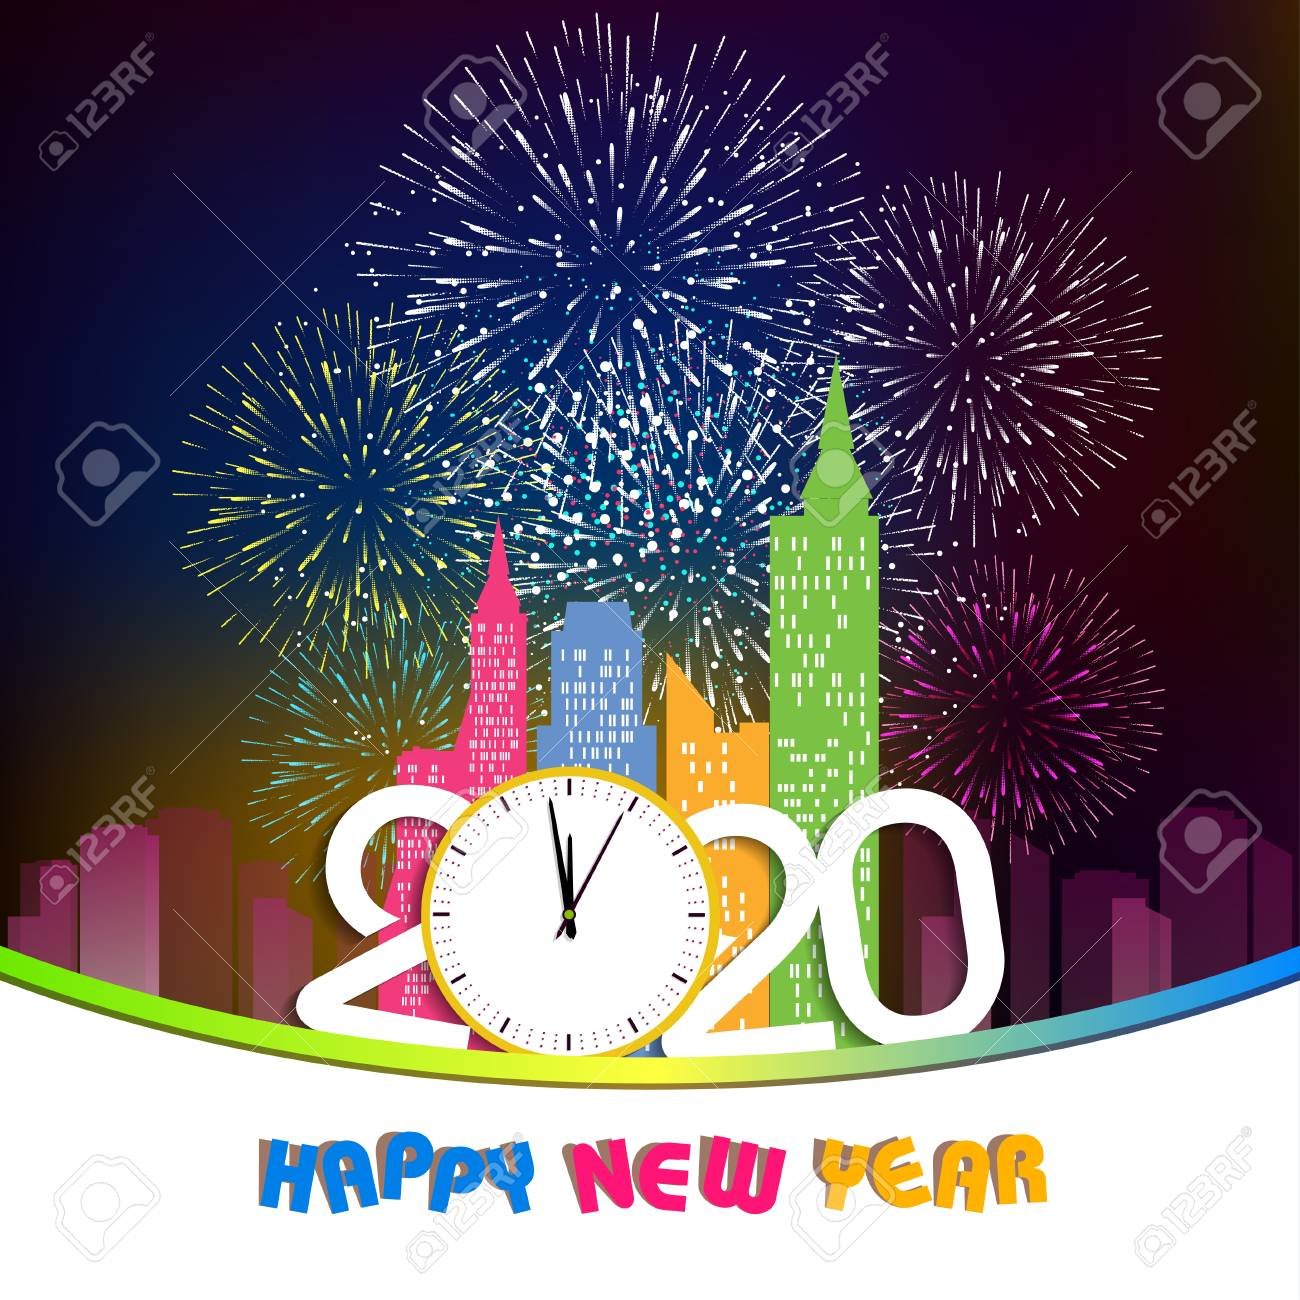 Happy New Year Clipart 2020 43